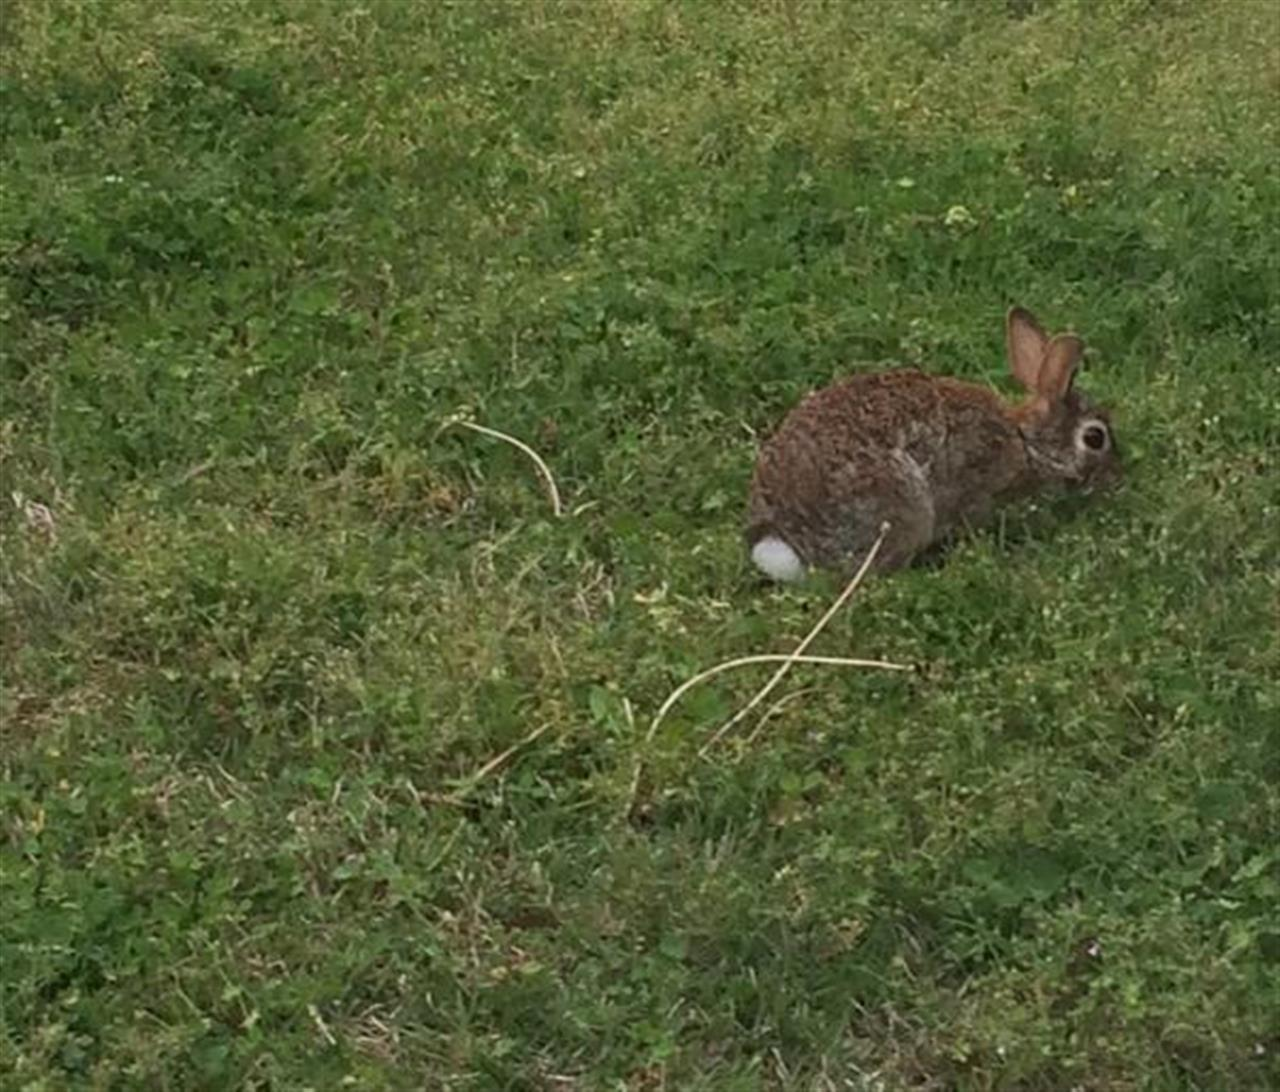 Loving spring in #TheCarolinas! Wild bunnies living in my yard in #Mooresville, #NC. #LeadingRElocal